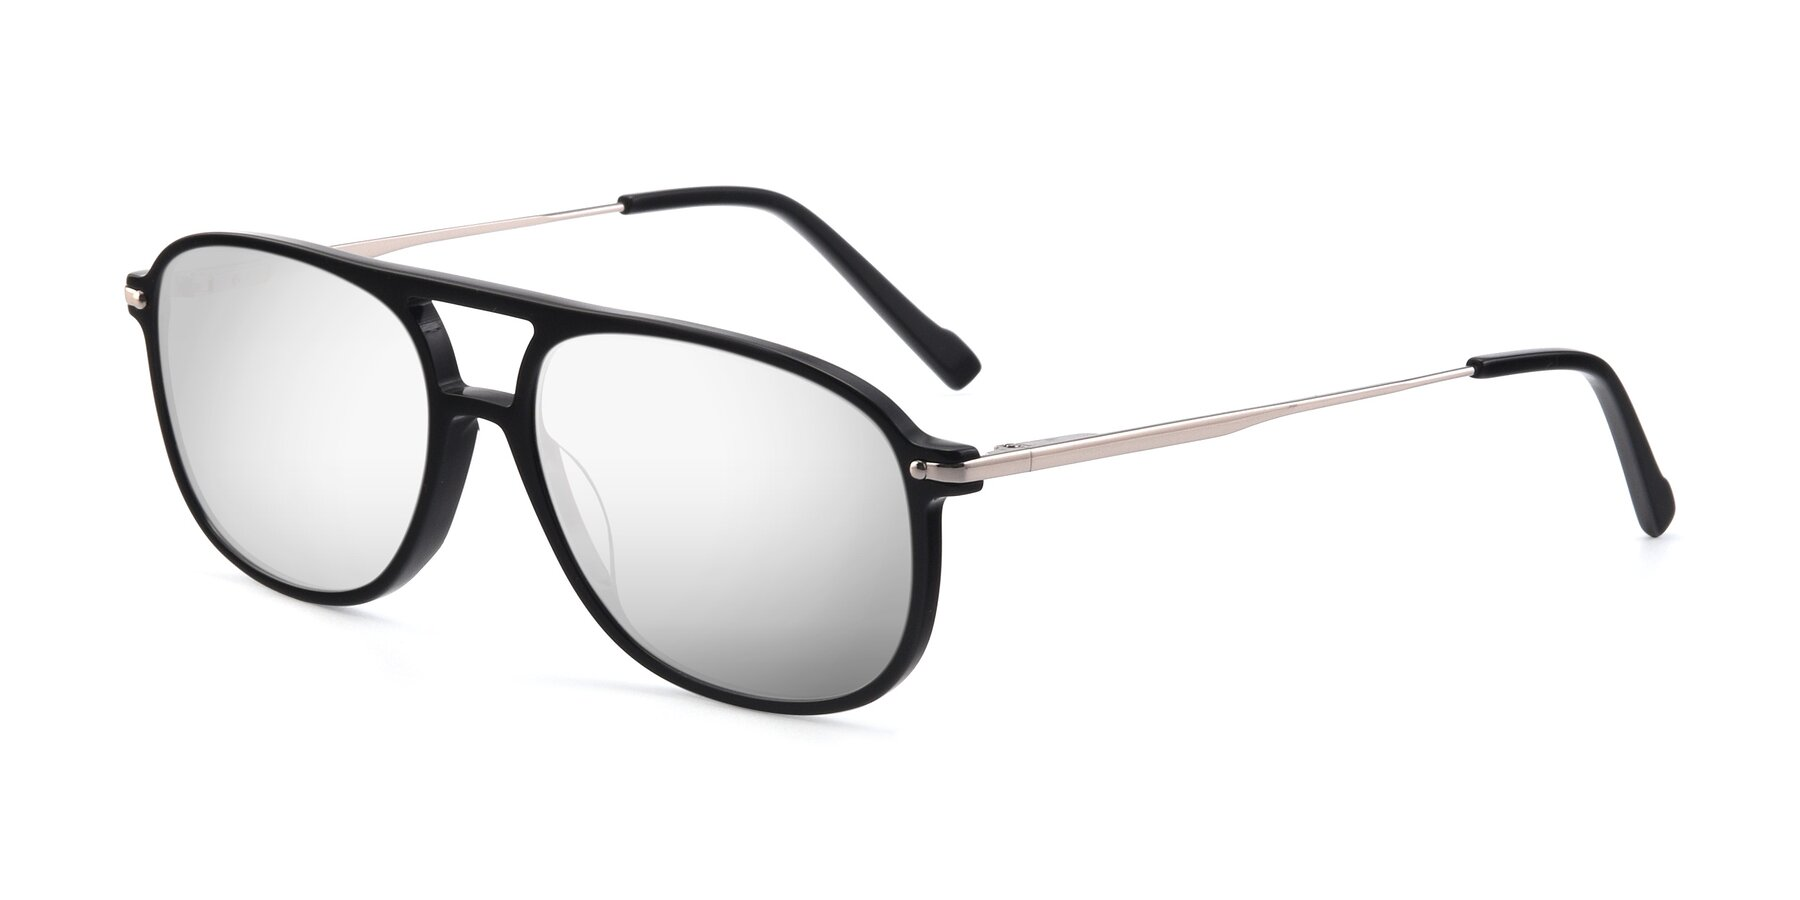 Angle of 17580 in Black with Silver Mirrored Lenses